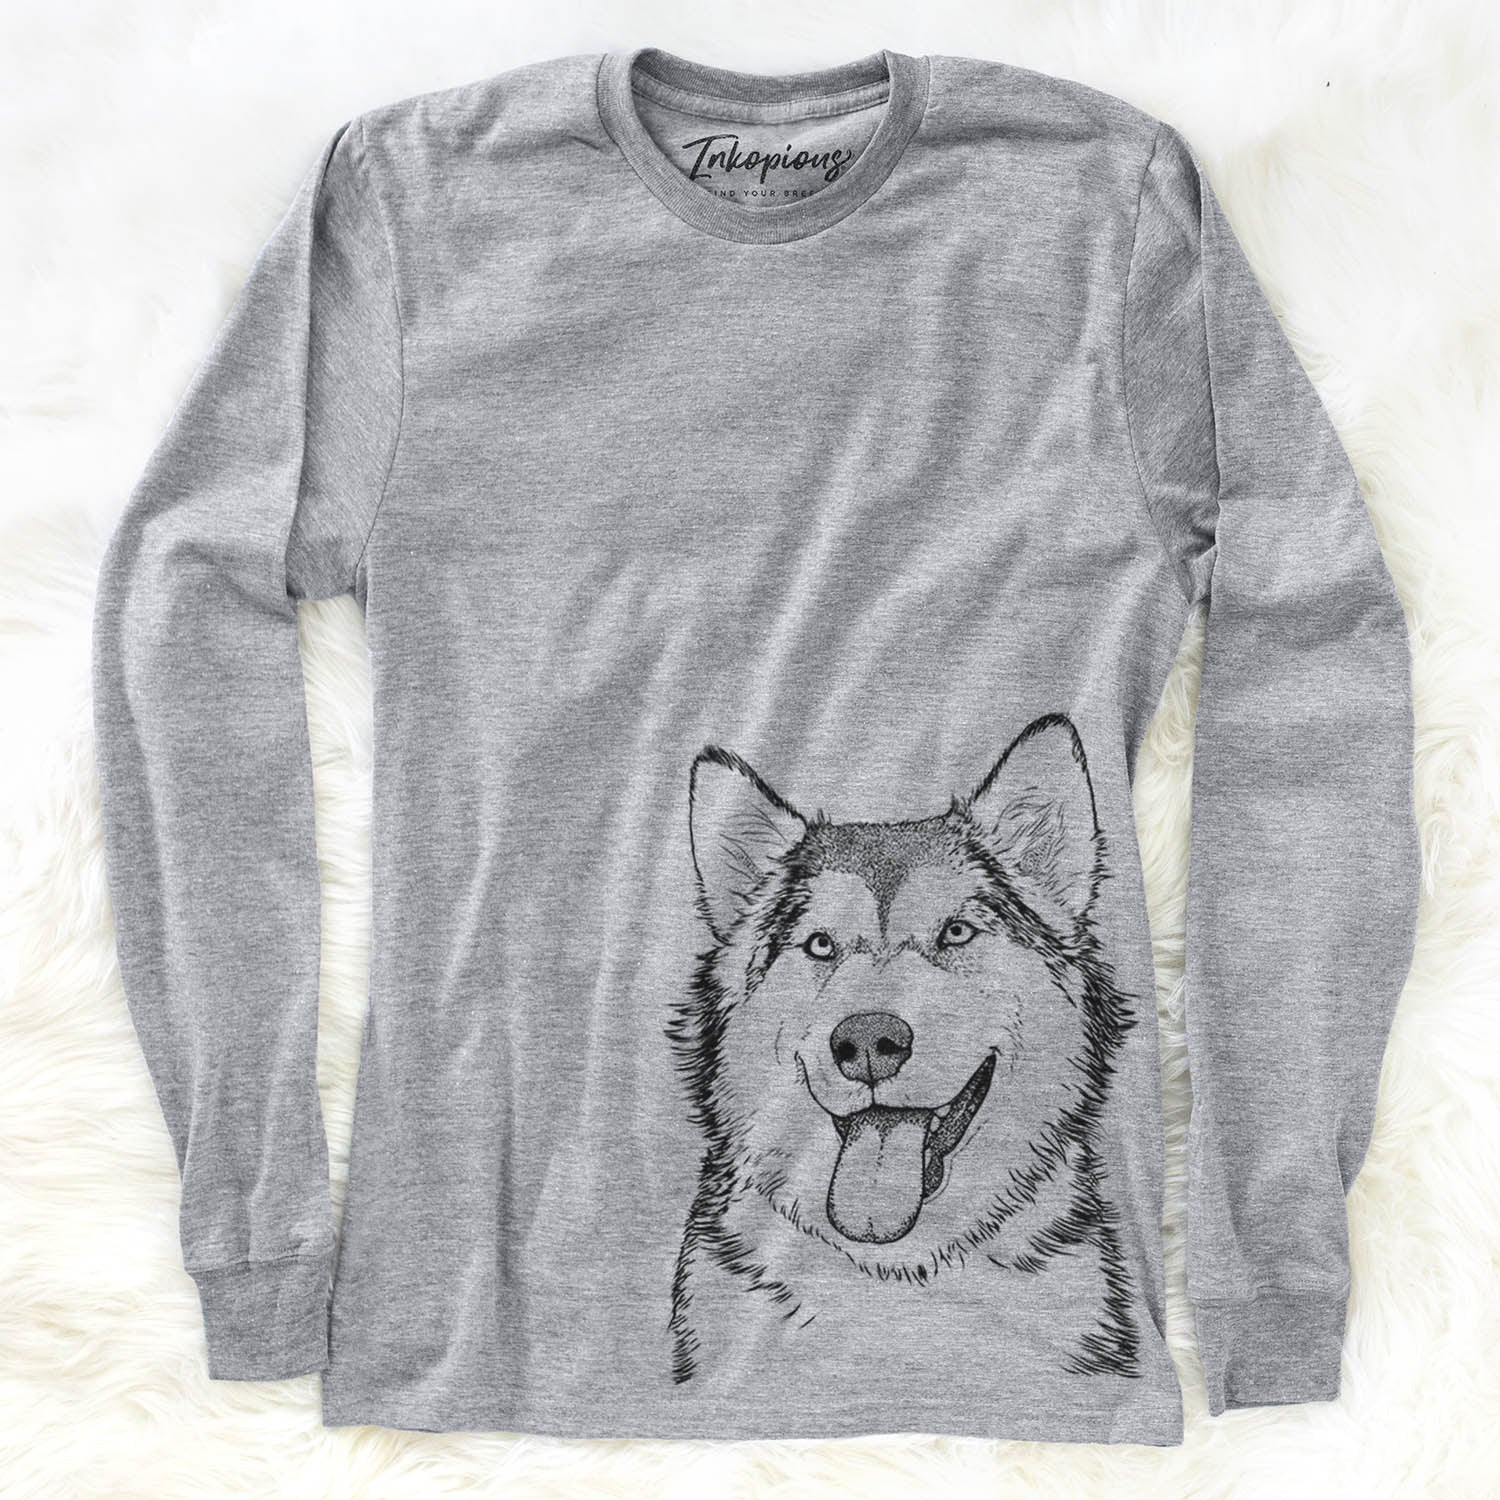 Kaskae the Malamute - Long Sleeve Crewneck